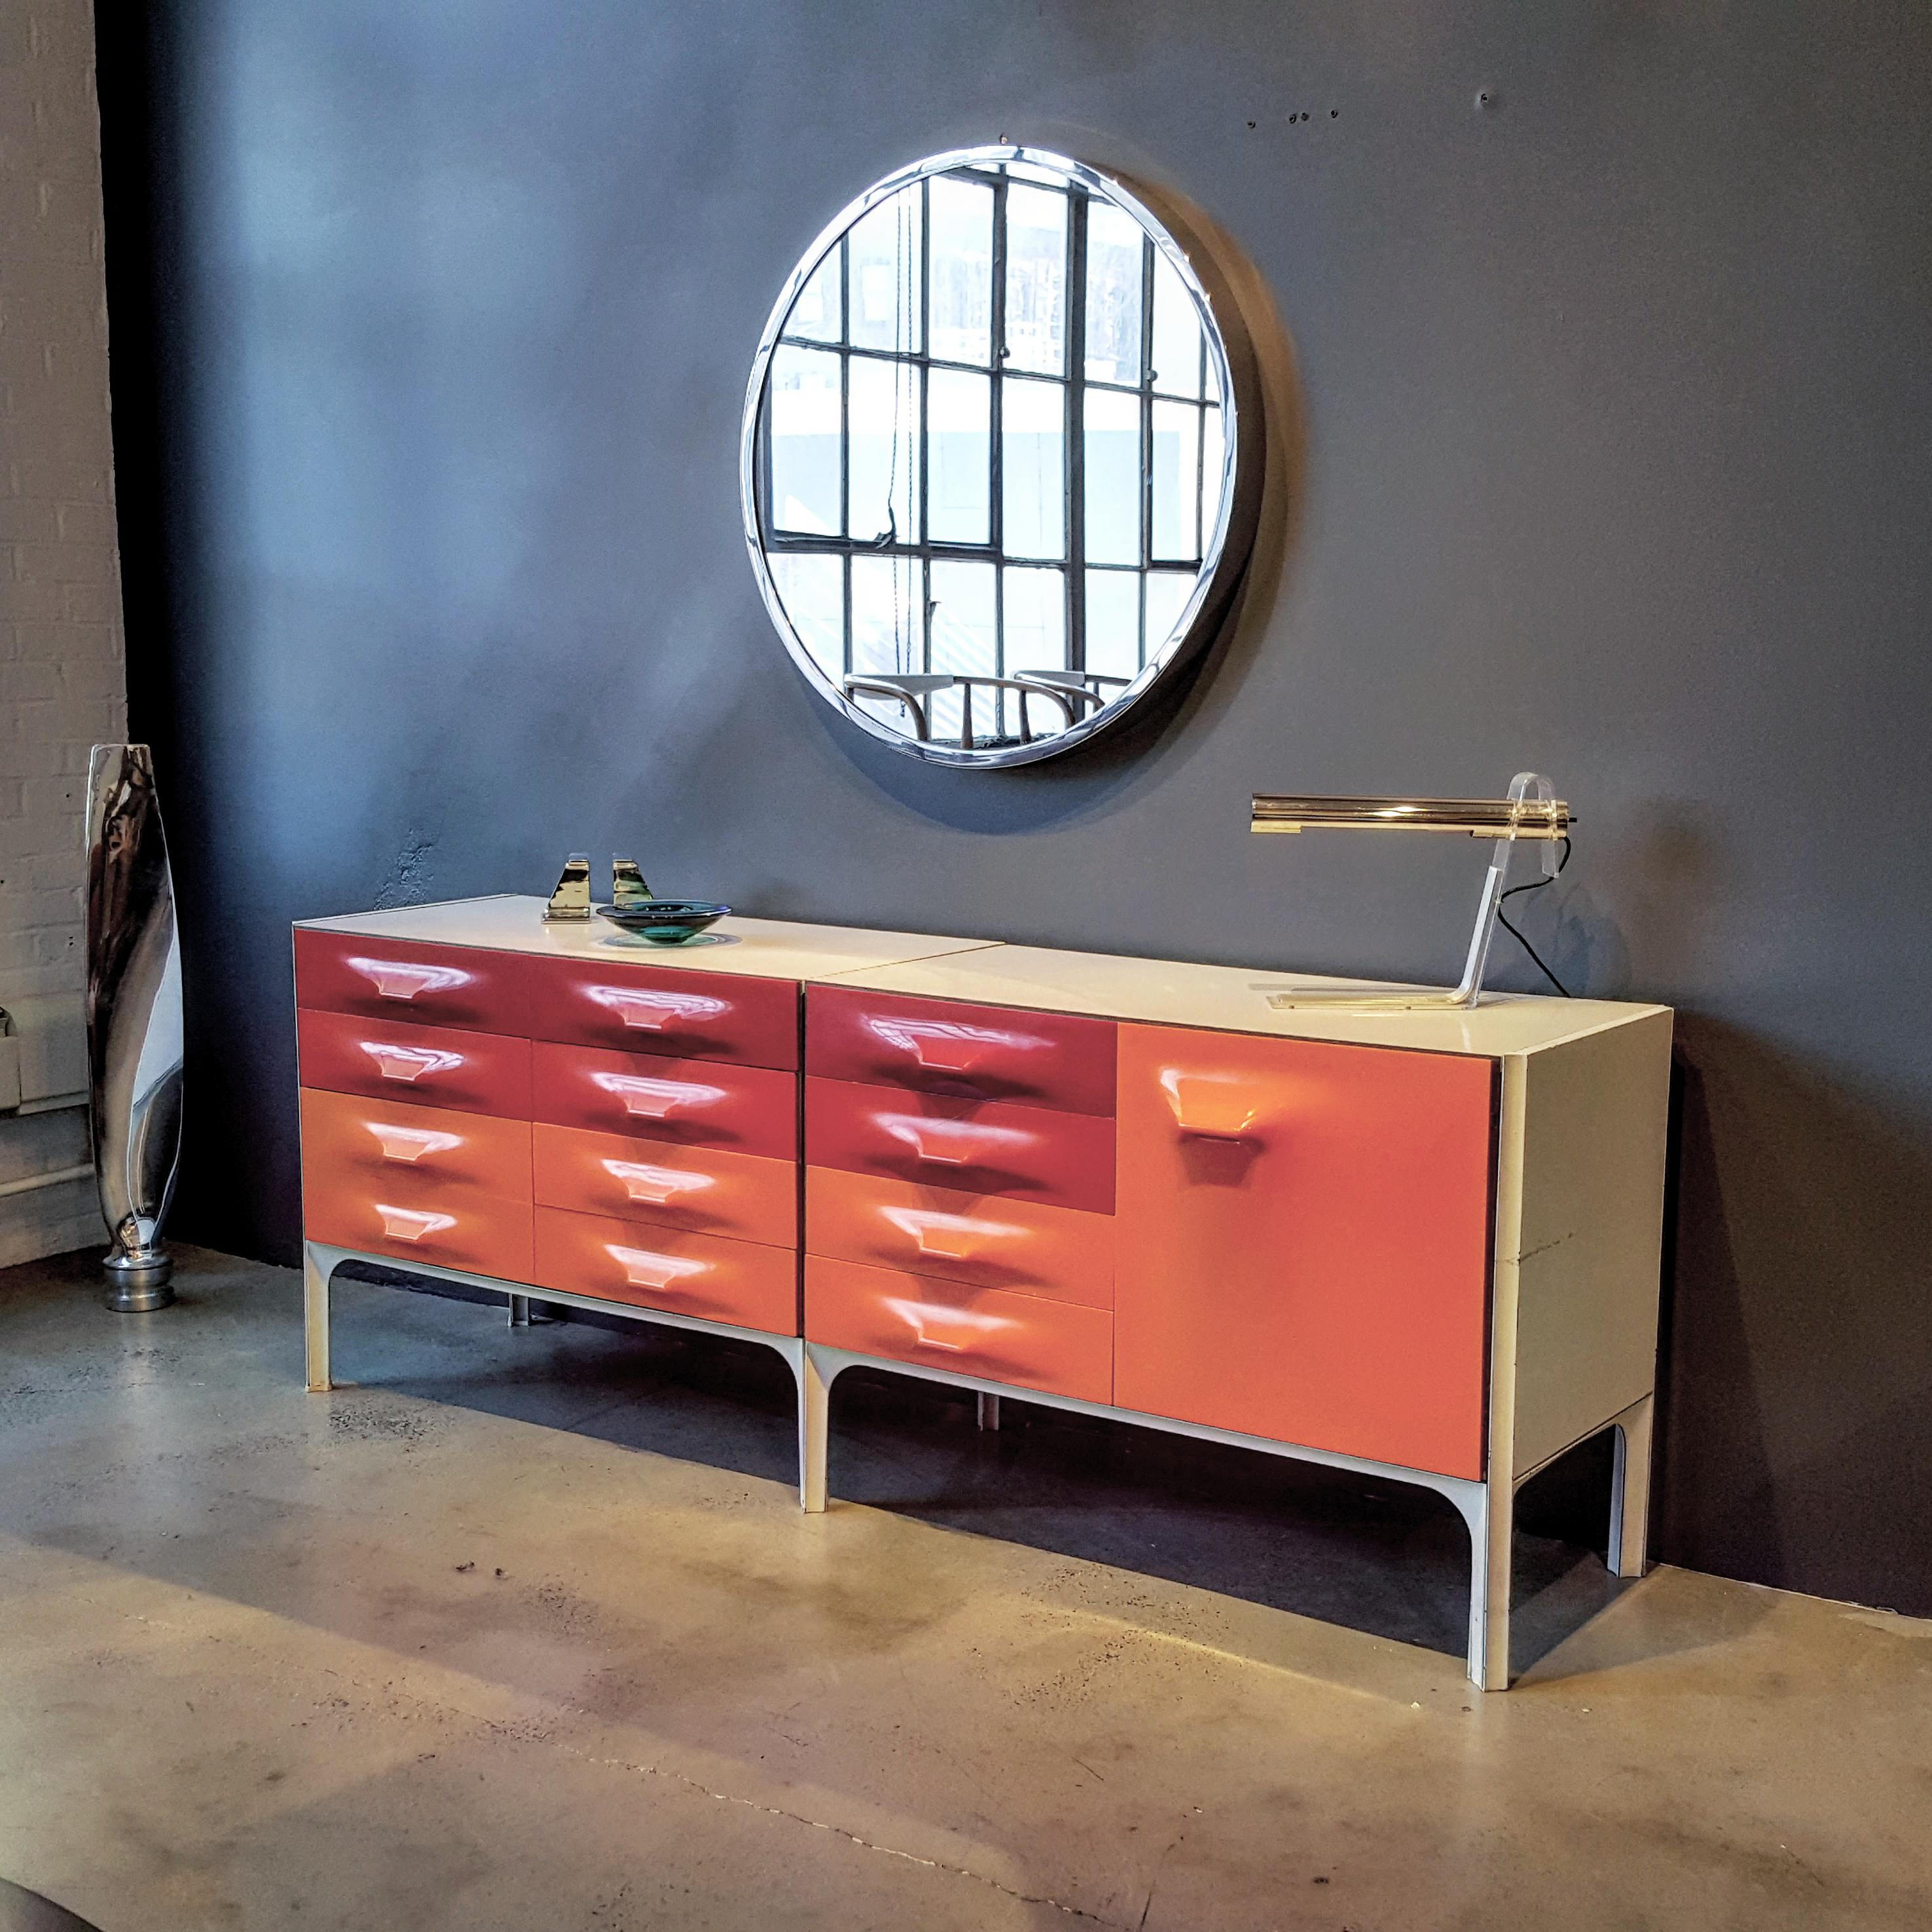 space age raymond loewy df2000 credenza for doubinsky frres france rare